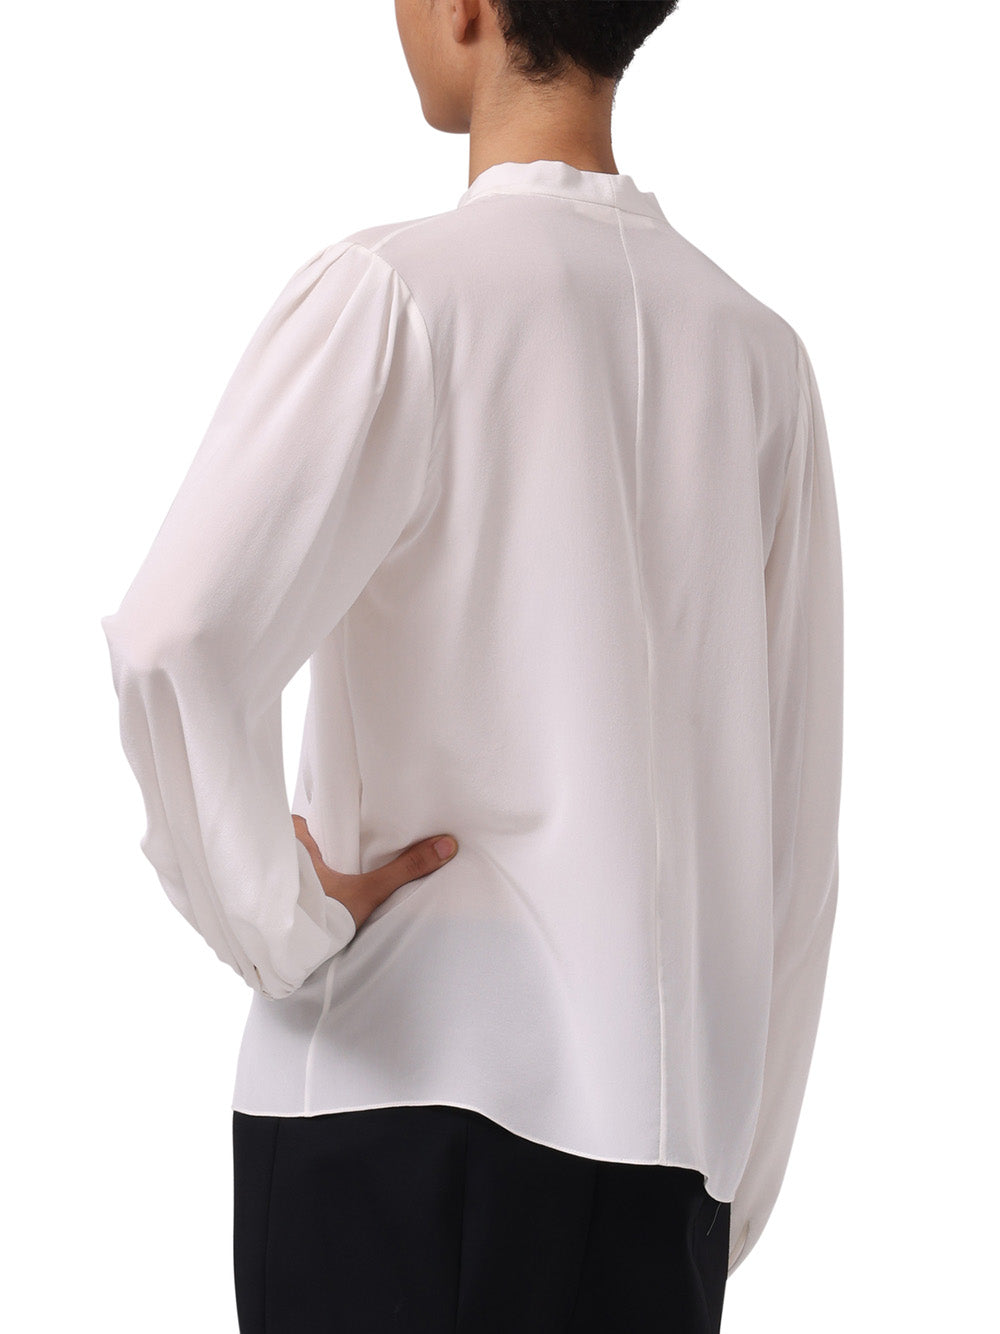 SILK CDC LONG SLEEVE TOP WITH NECKTIE